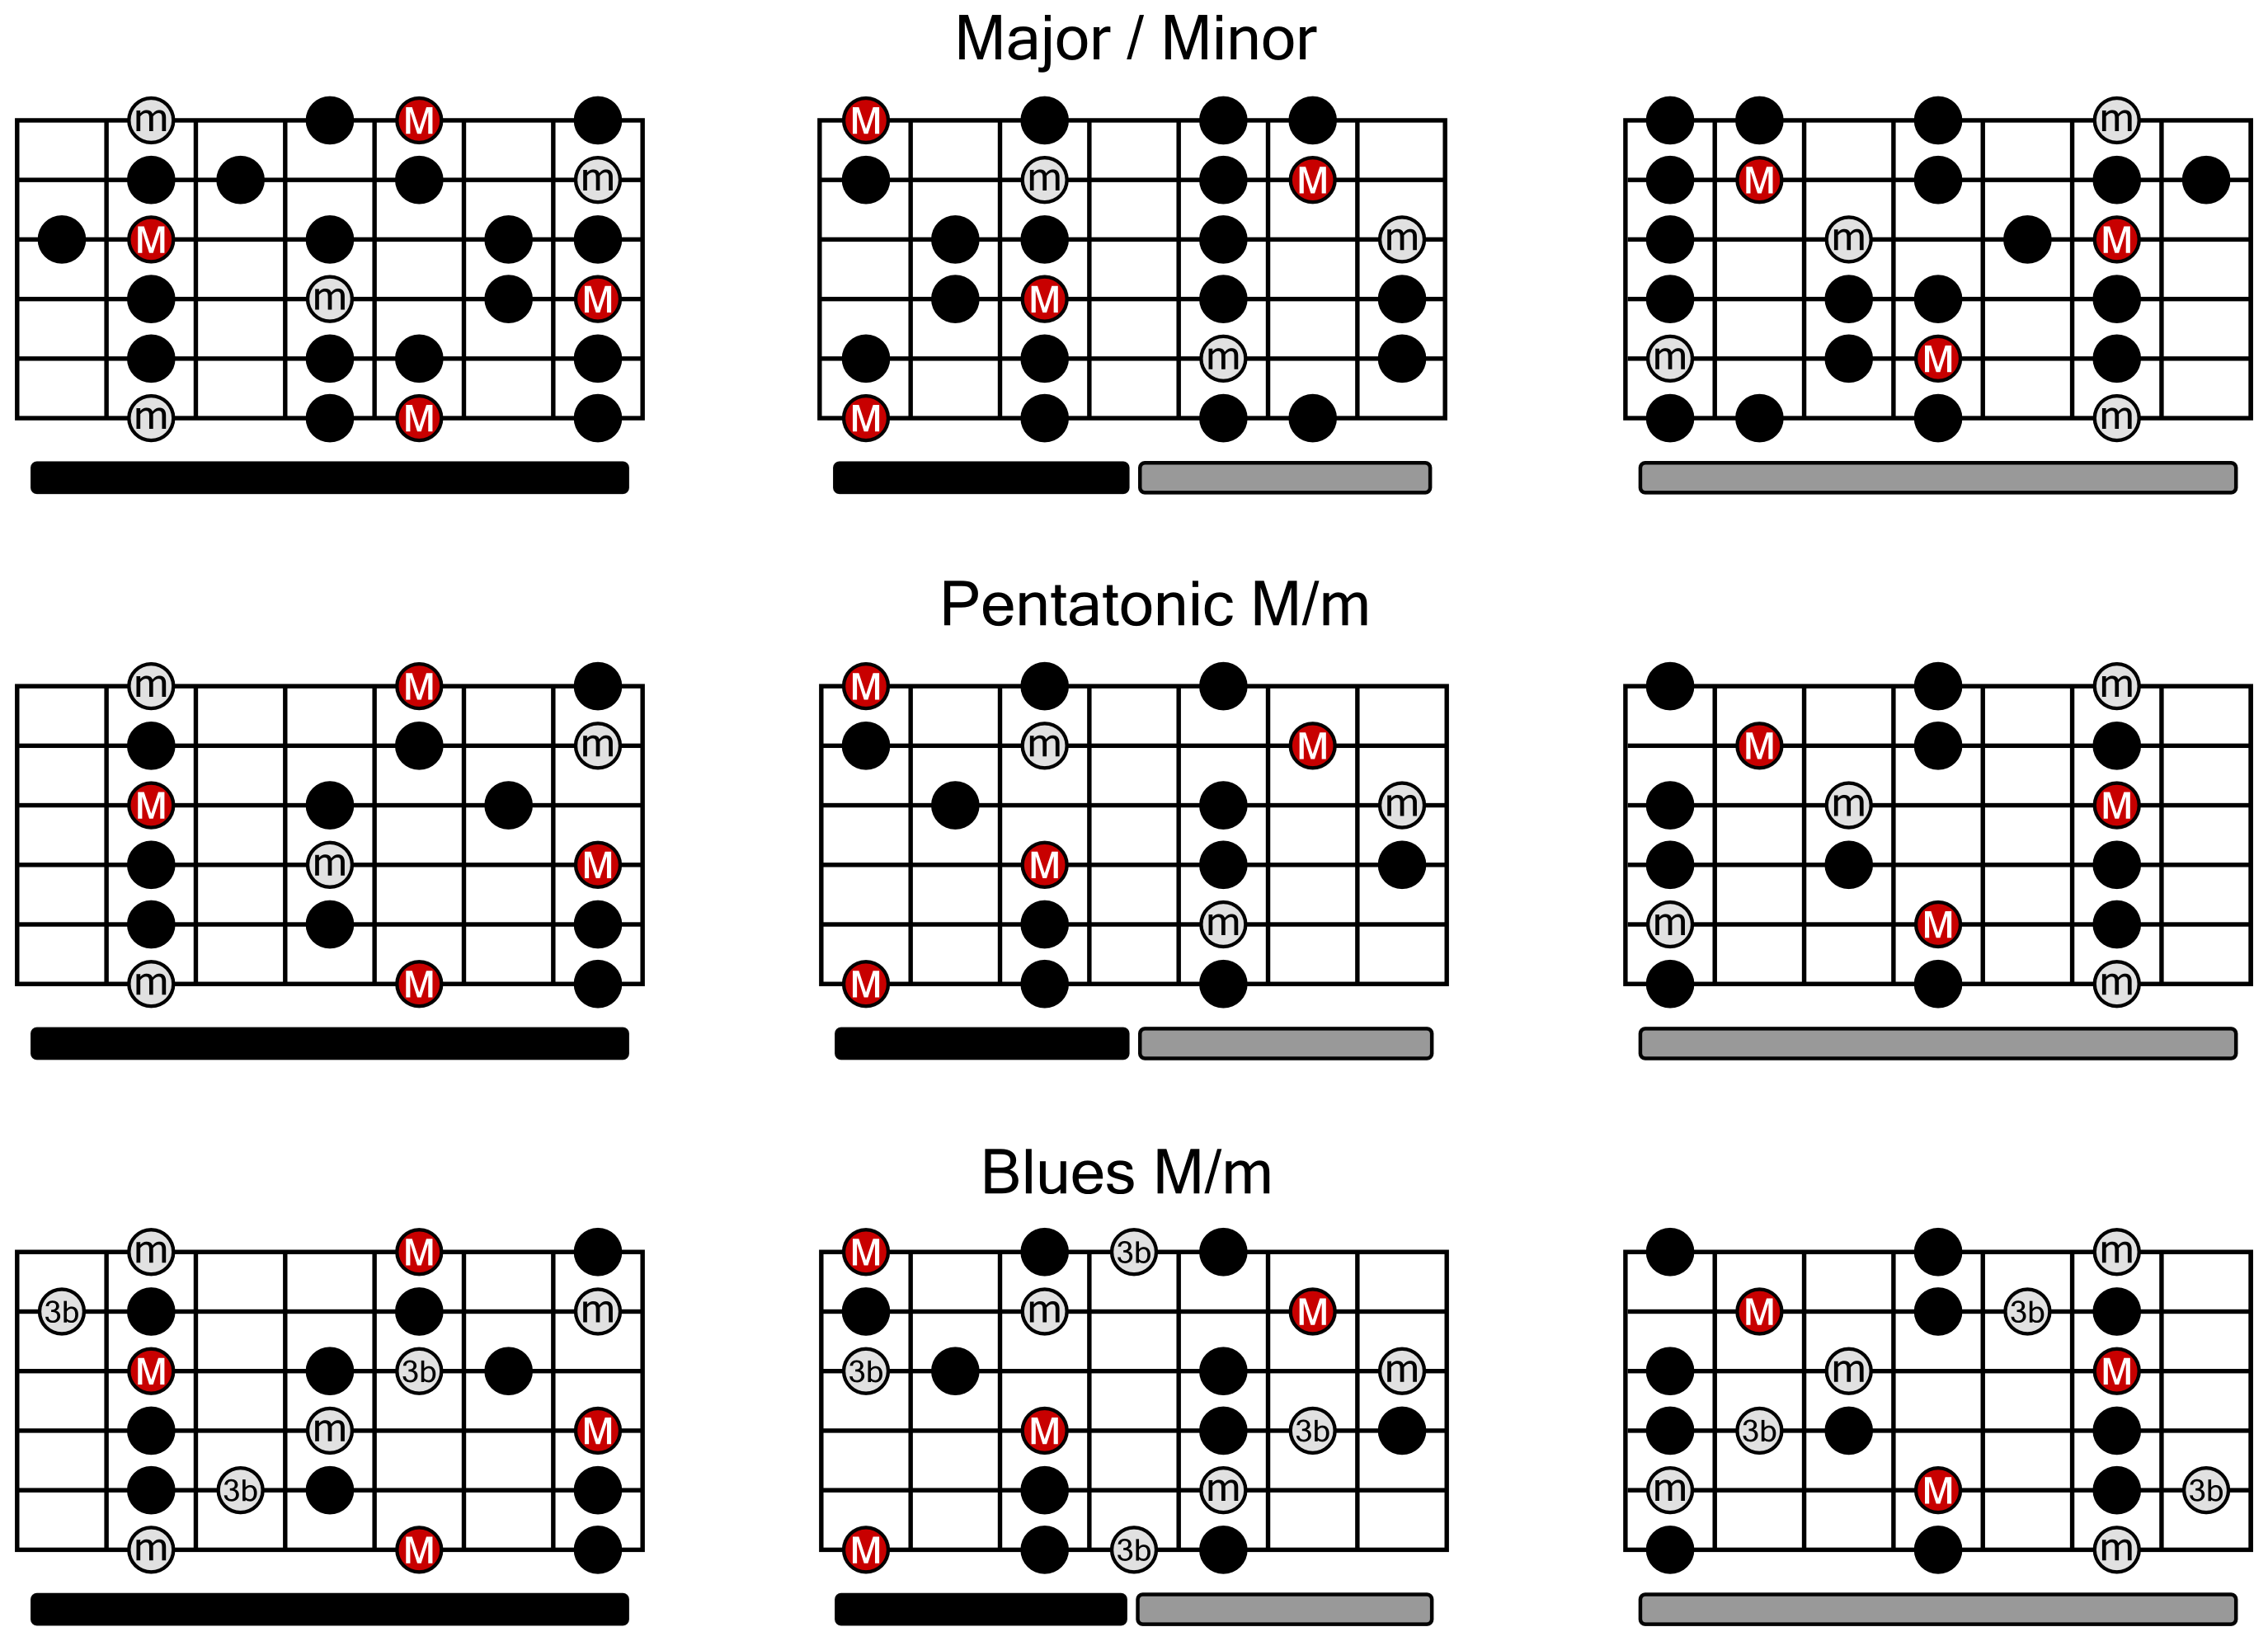 Guitar Scales Chart for Major/Minor, Pentatonic and Blues